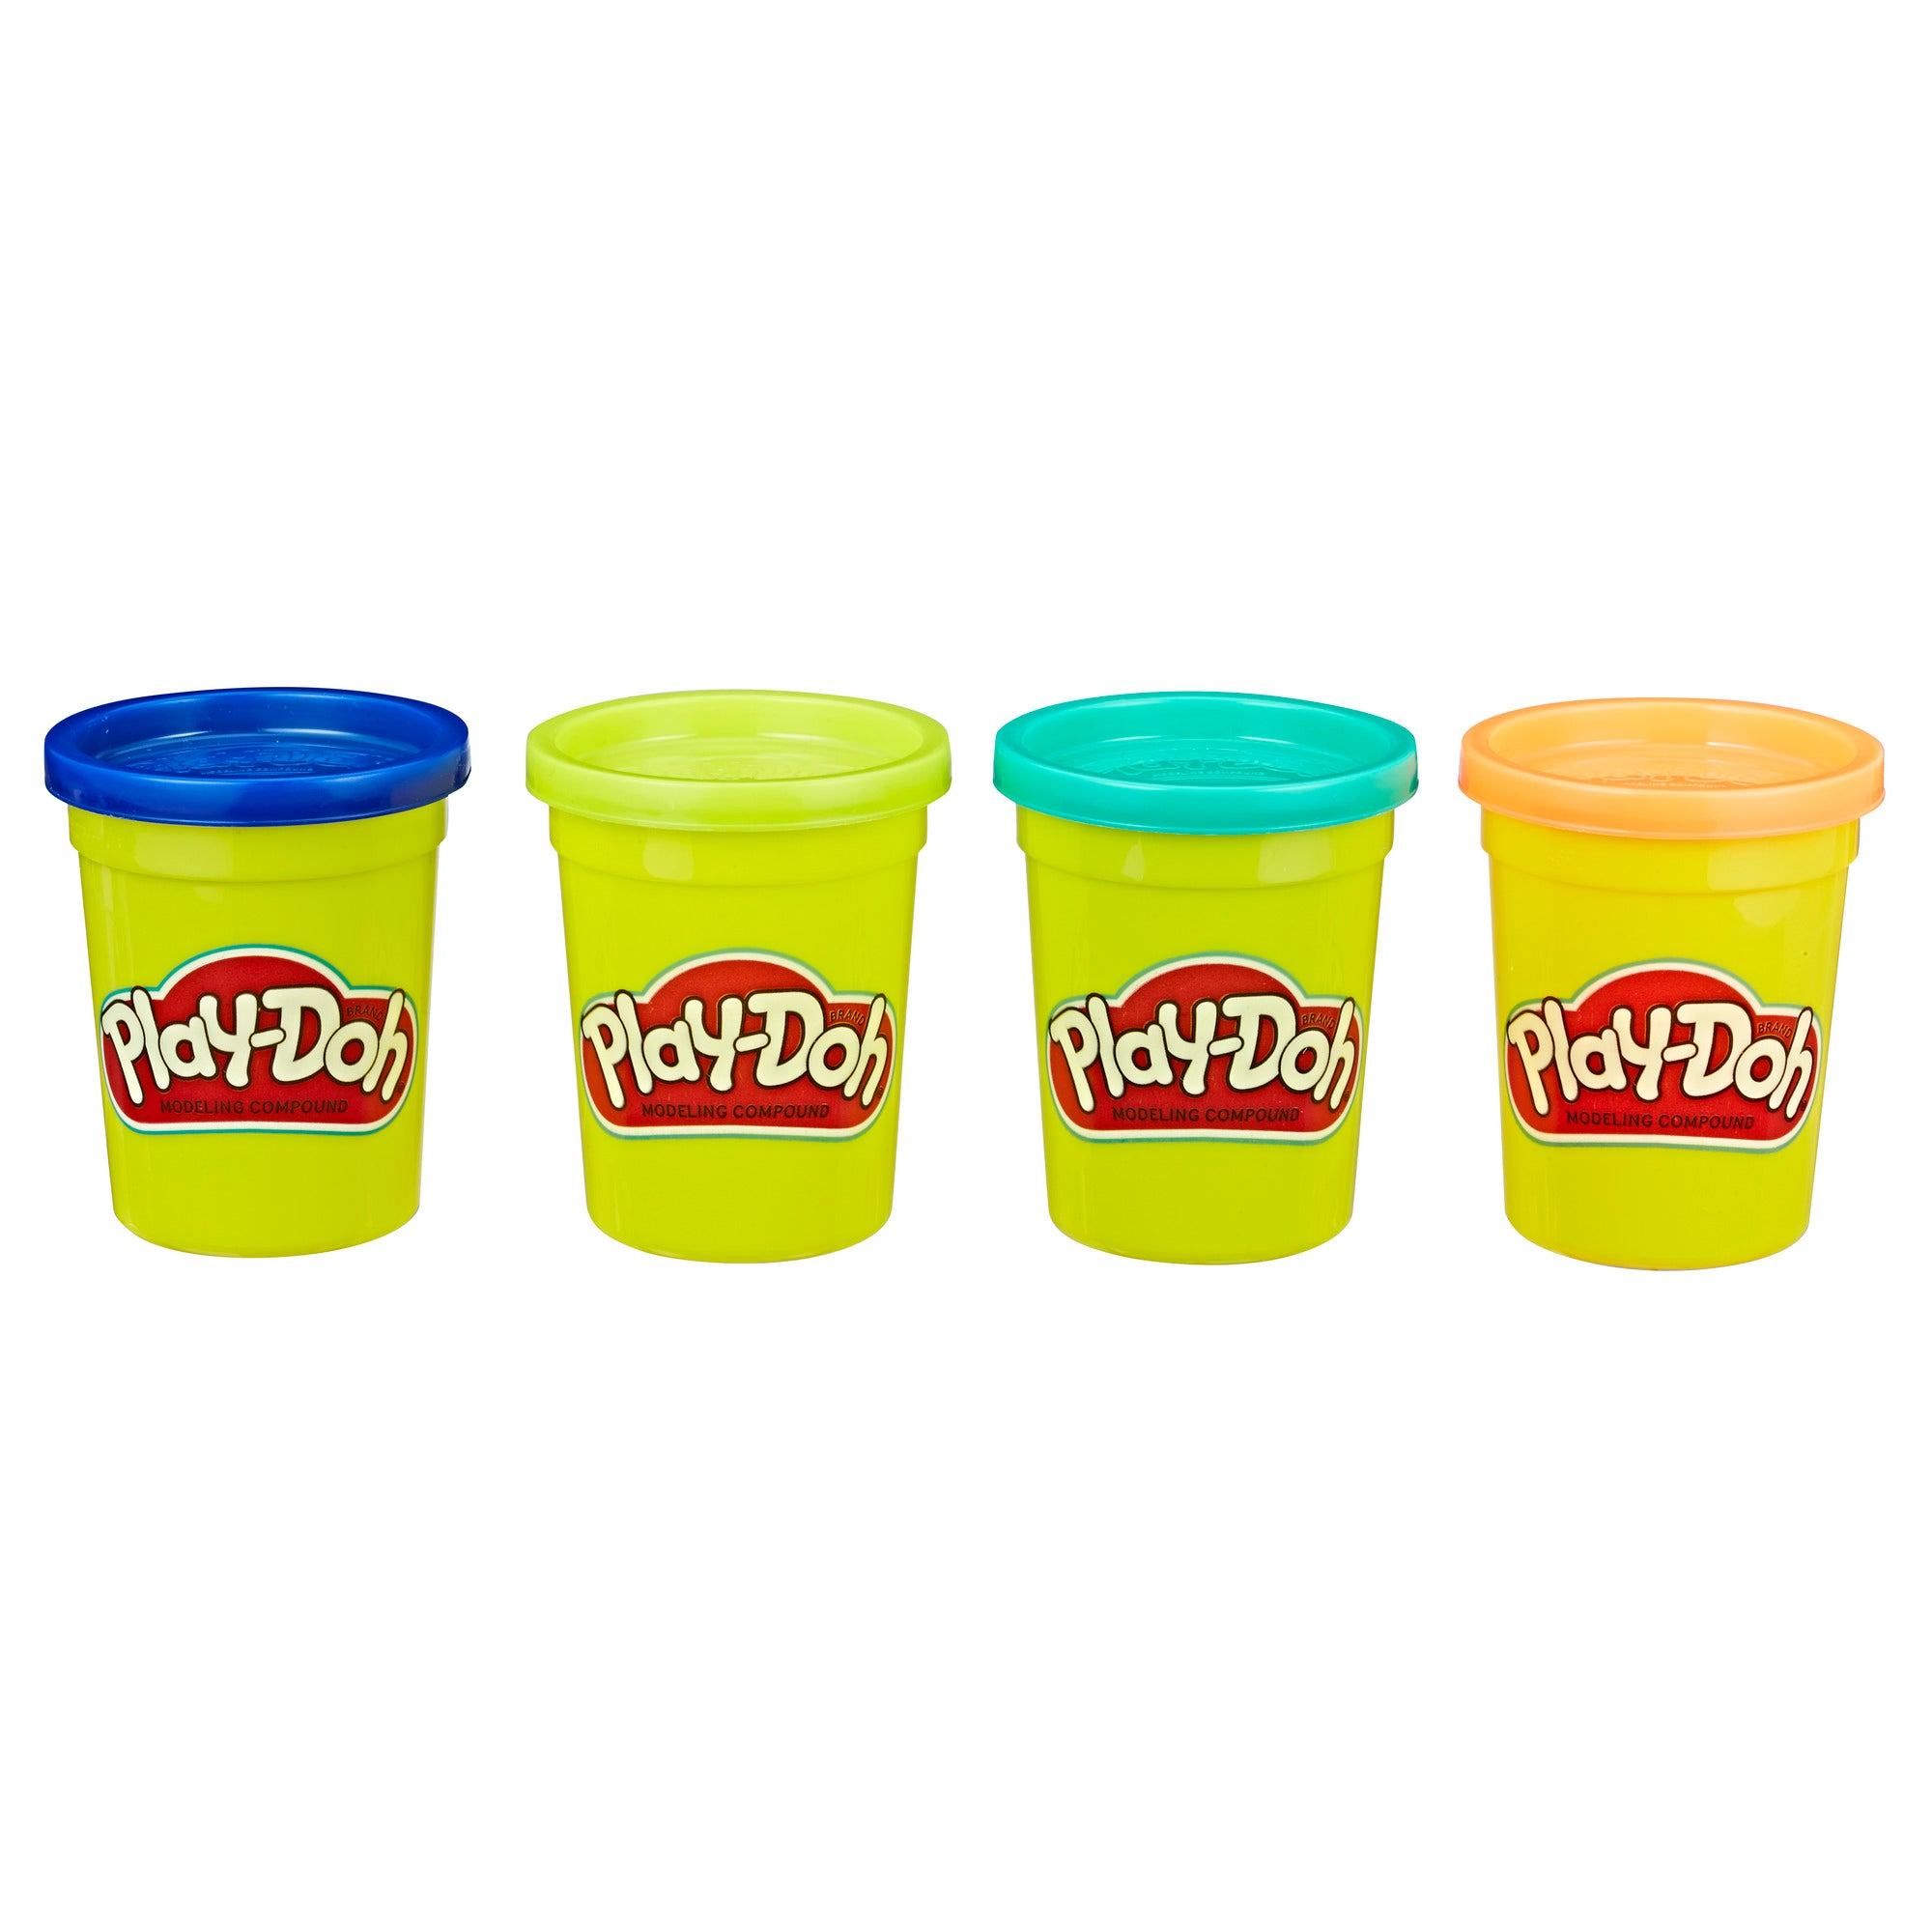 Play Doh 4 4oz Play-Doh 4-Pack of 4-Ounce Cans (Wild Colors)